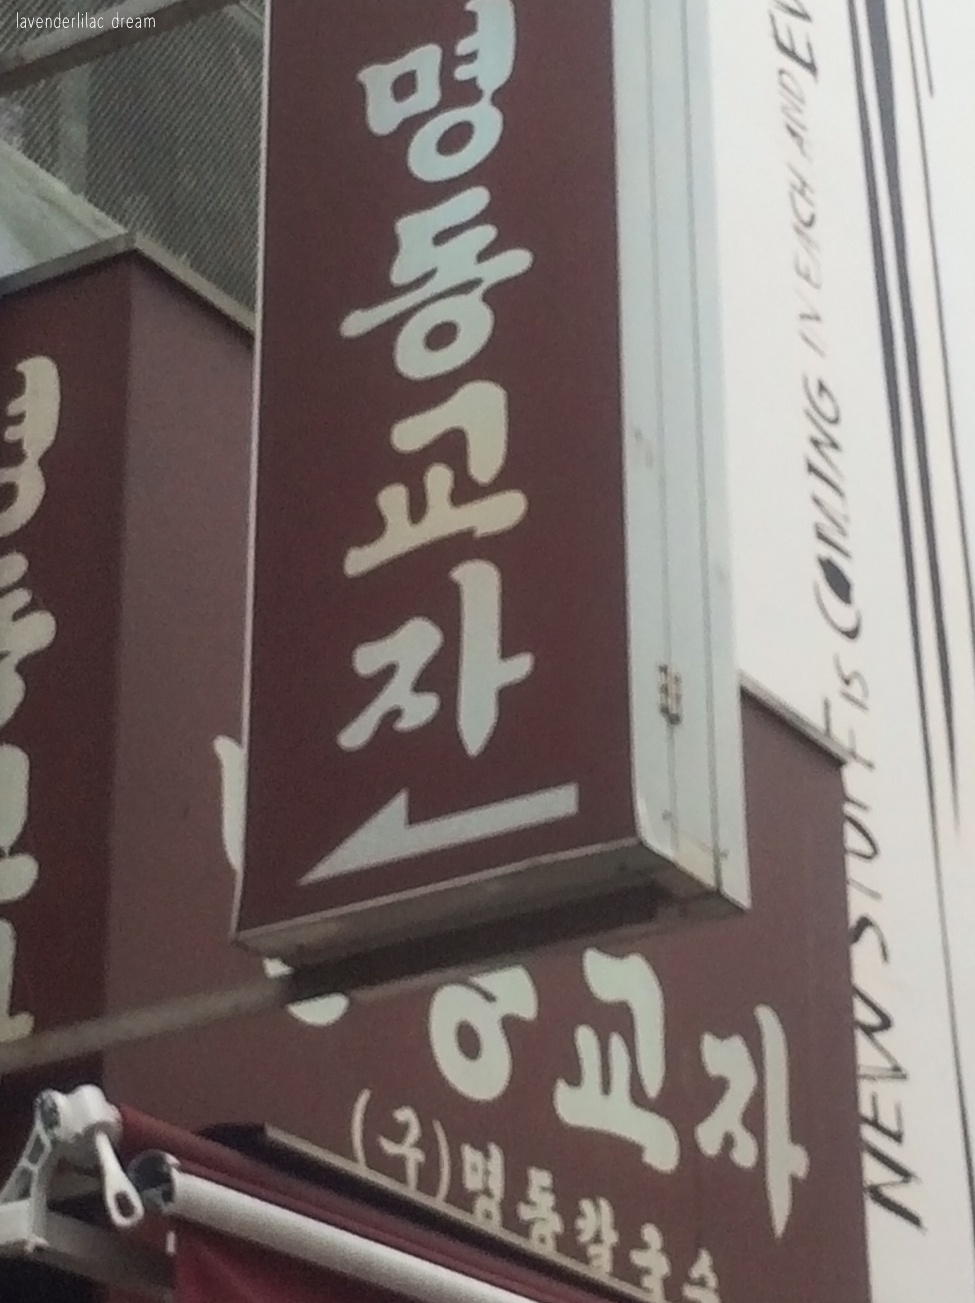 South Korea, Seoul, Myeongdong, YISS 2014, Myeongdong Gyoja sign